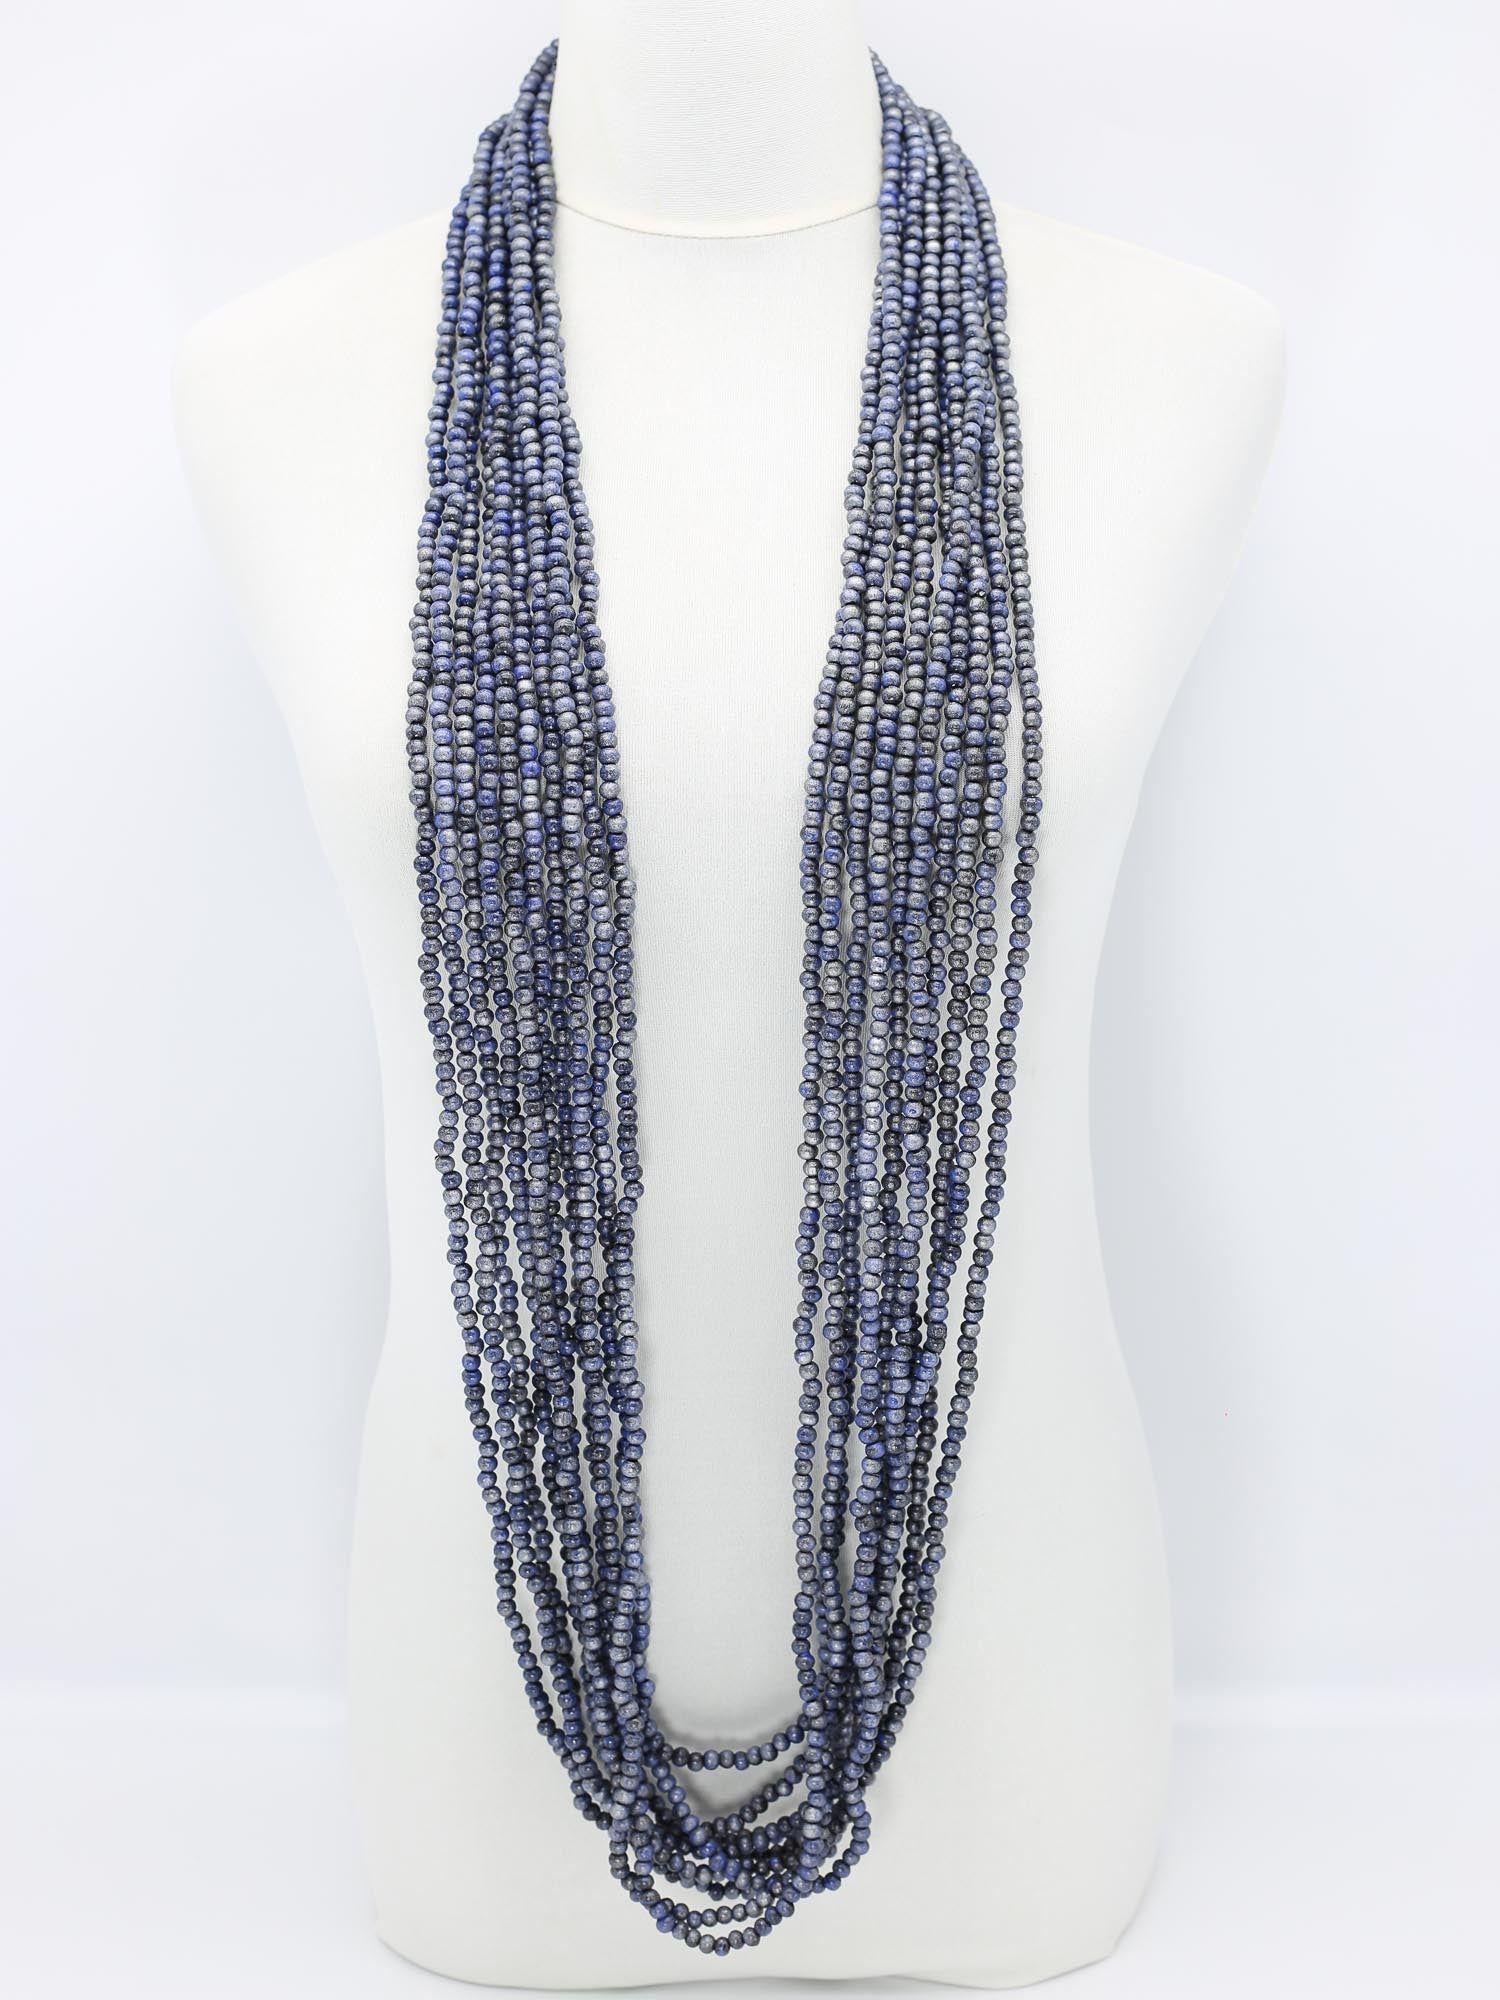 Jianhui London 10 Strand Hand Painted Bead Necklace, Silver/Black/Cobalt Blue - Statement Boutique